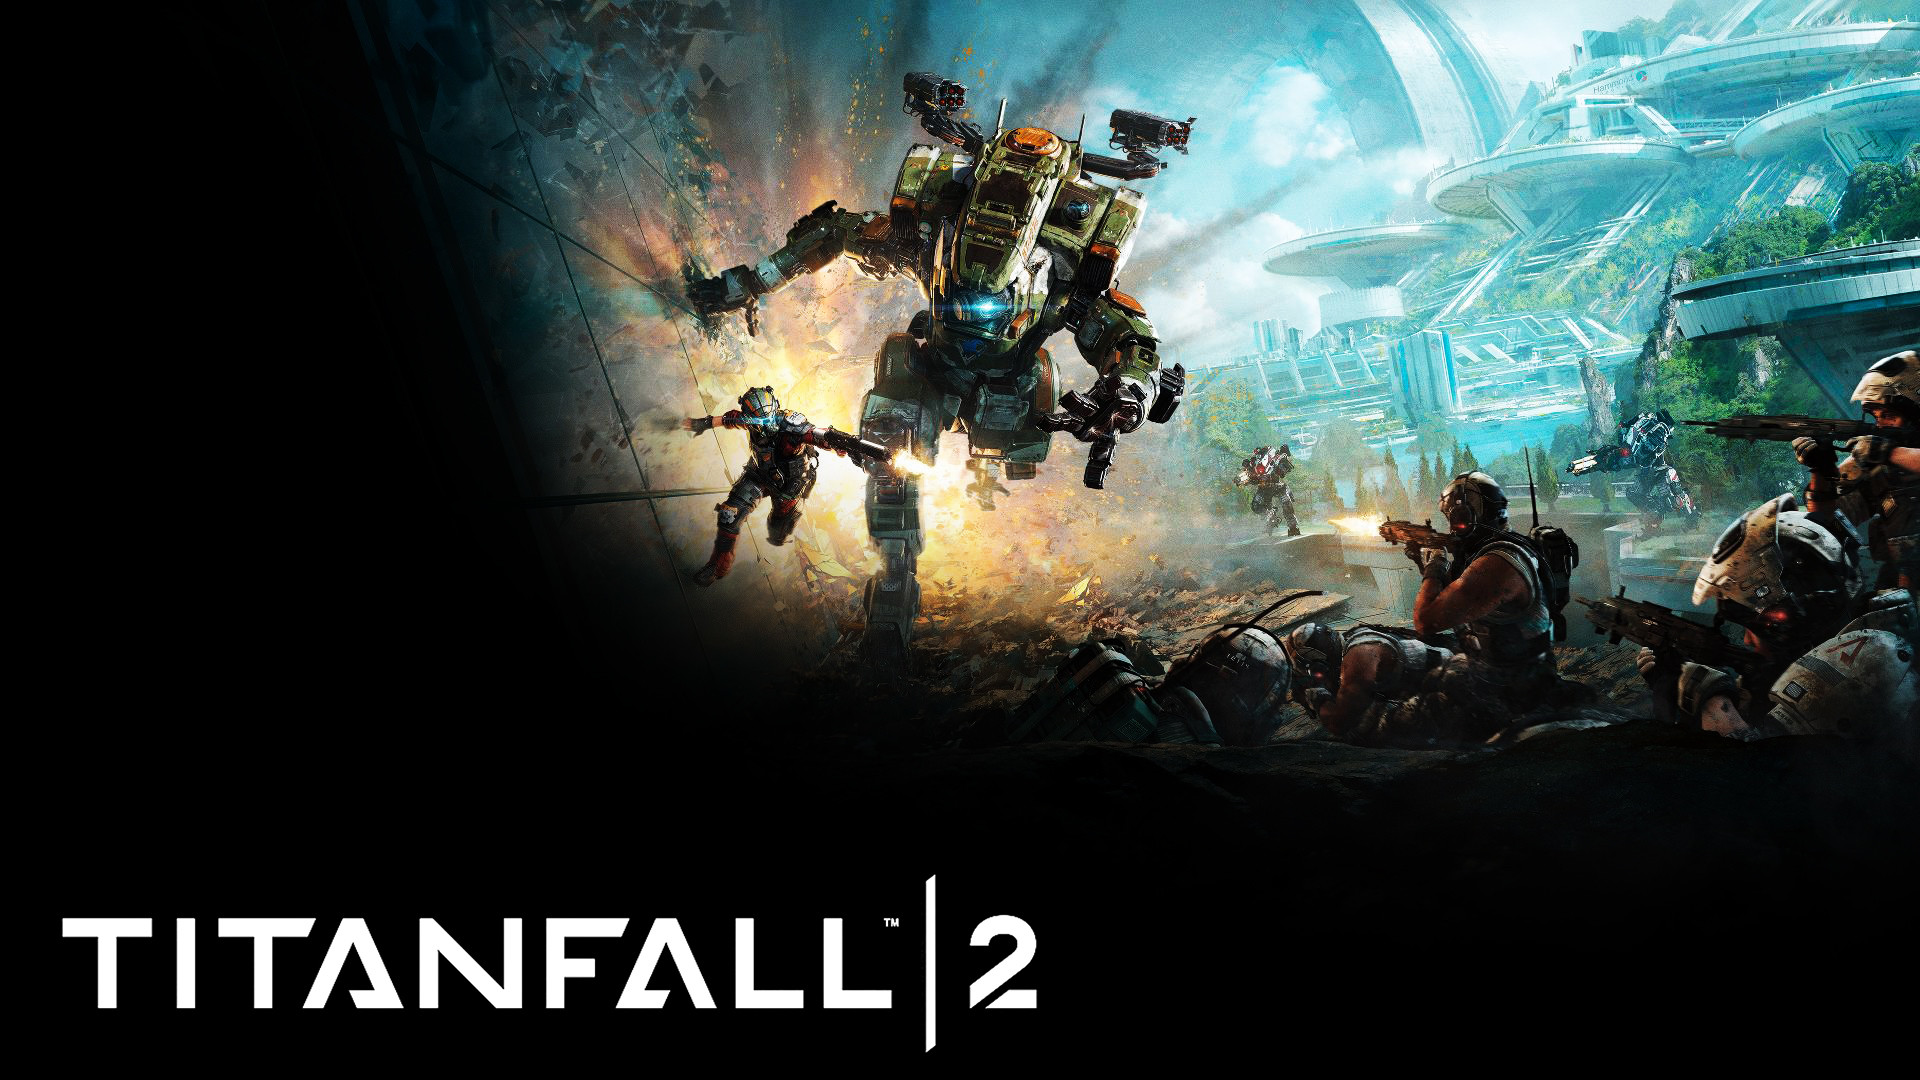 Titanfall 2 wallpapers 78 images - Titanfall 2 wallpaper hd ...